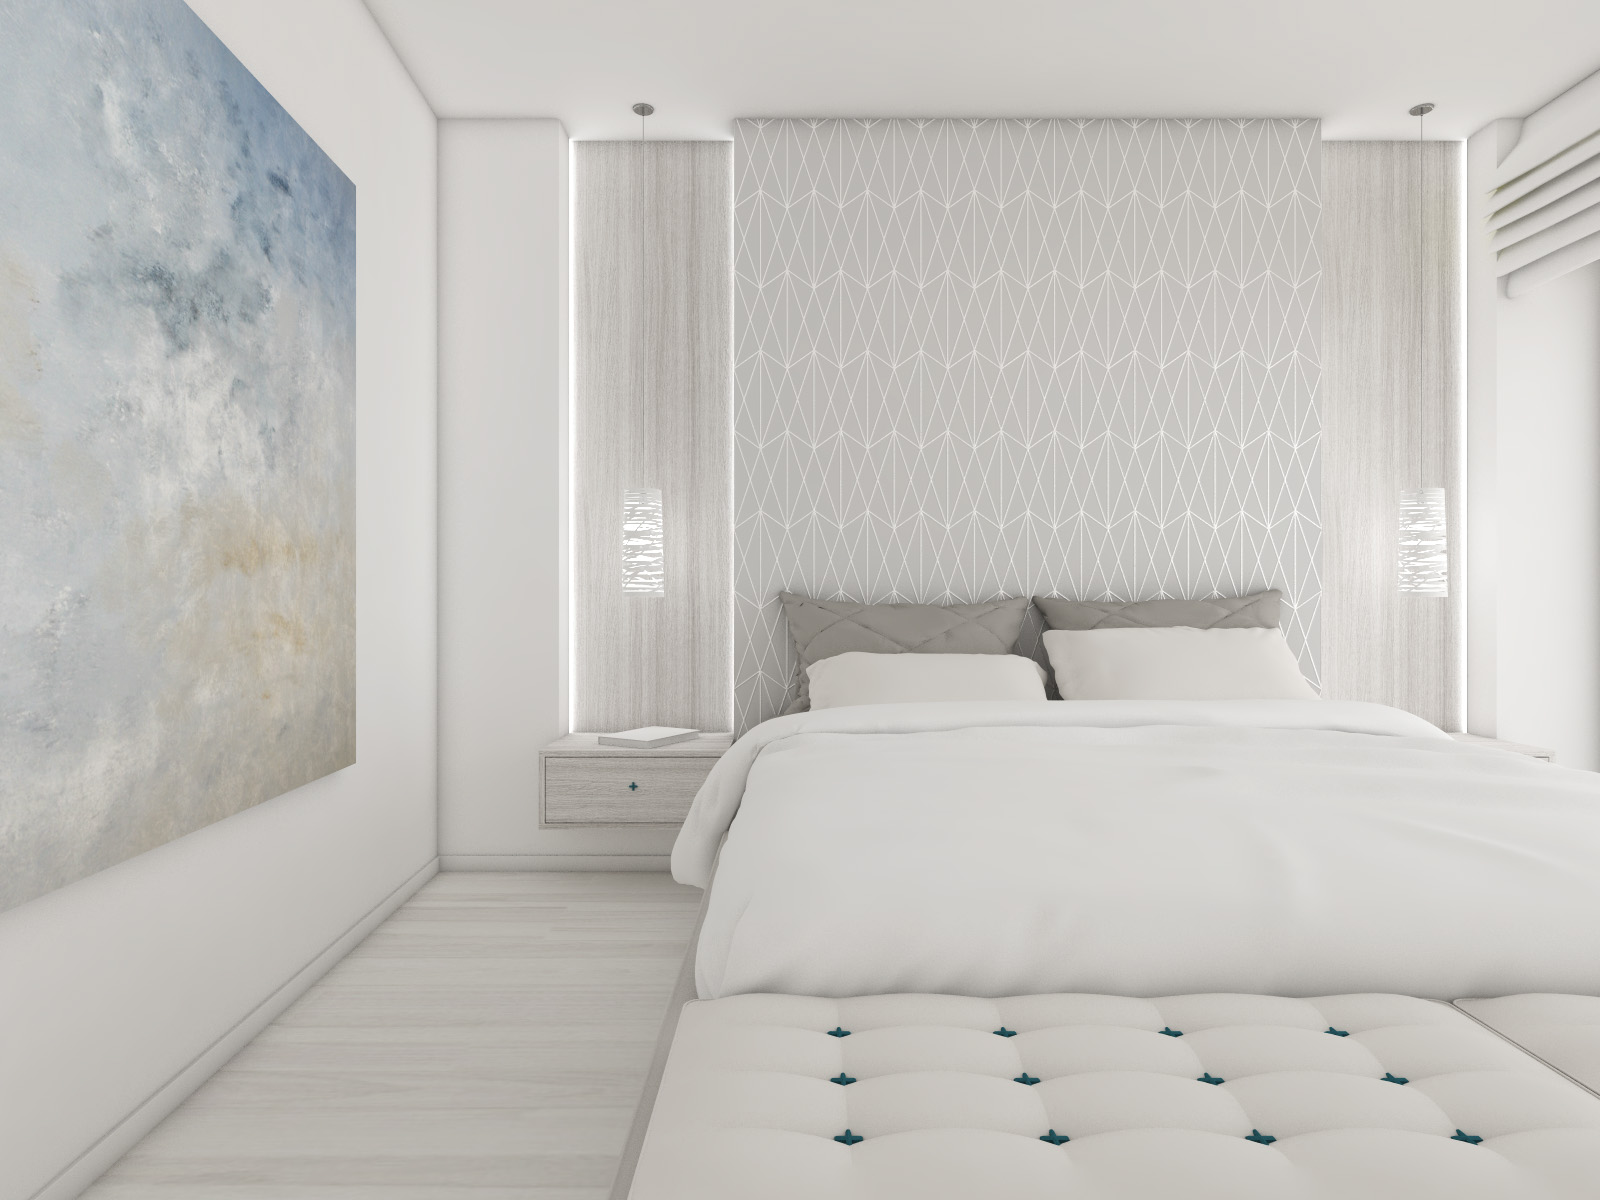 Master suite bedroom | by CADFACE